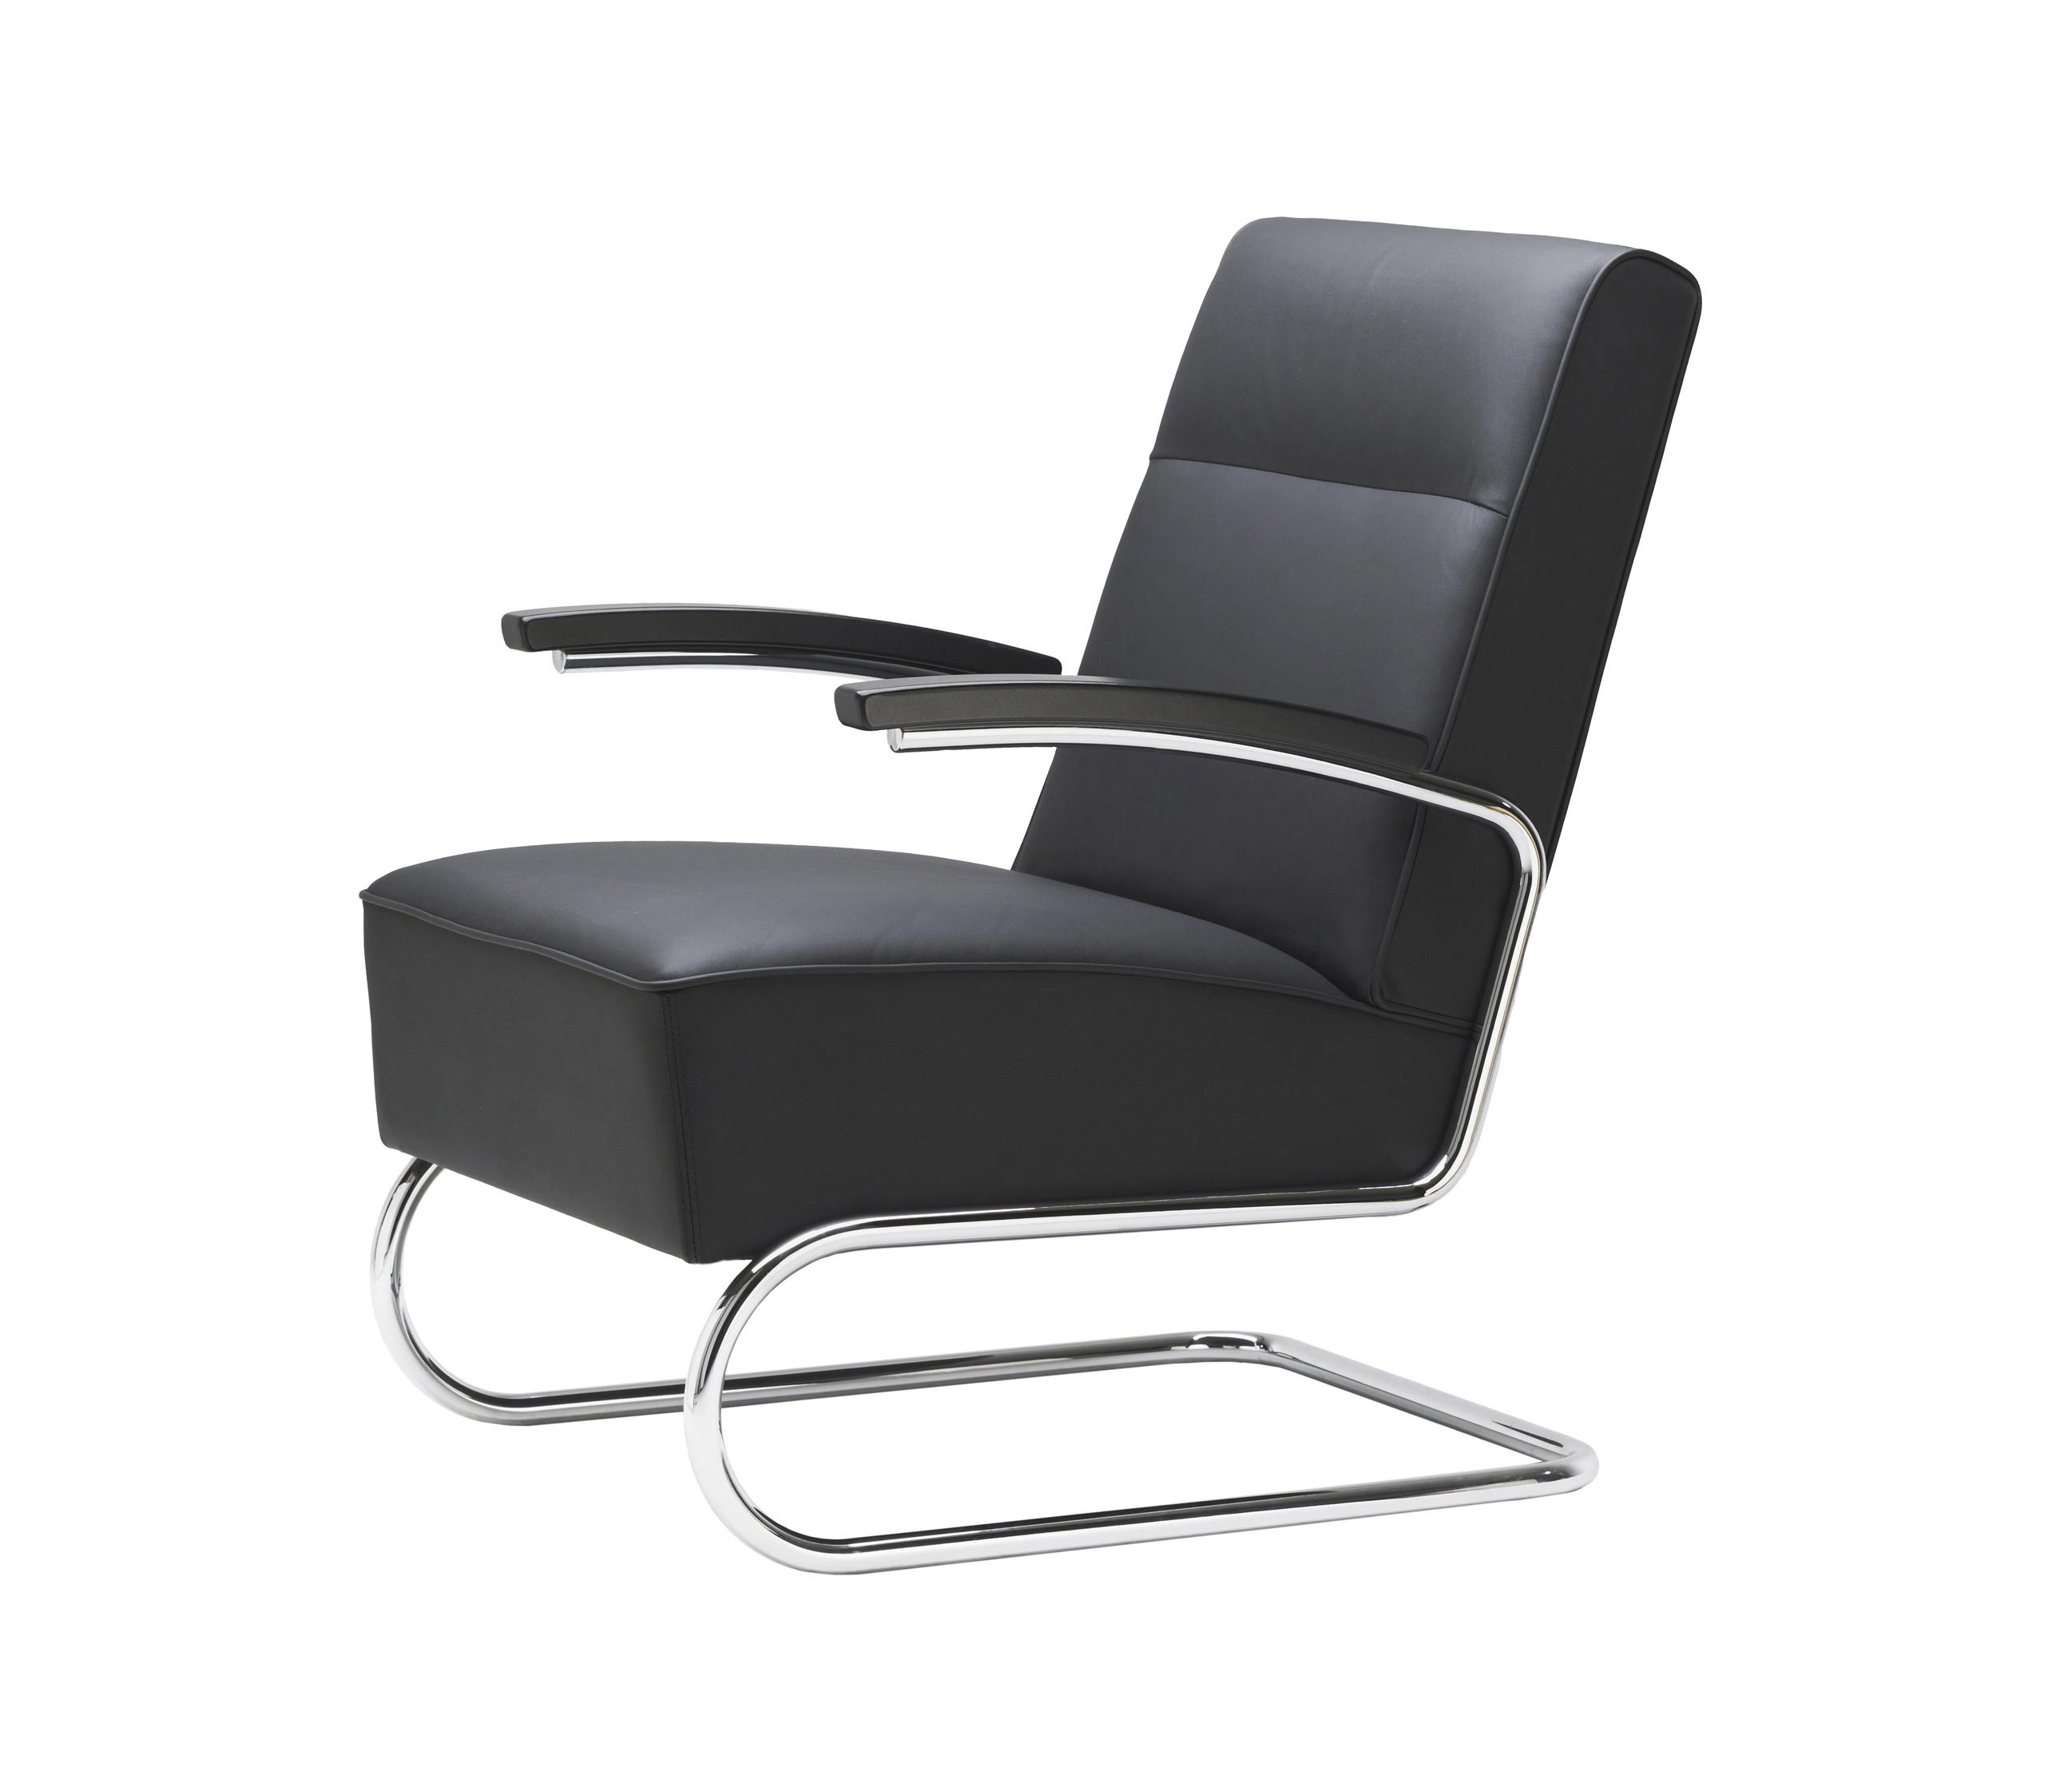 s 412 lounge chairs from thonet architonic. Black Bedroom Furniture Sets. Home Design Ideas